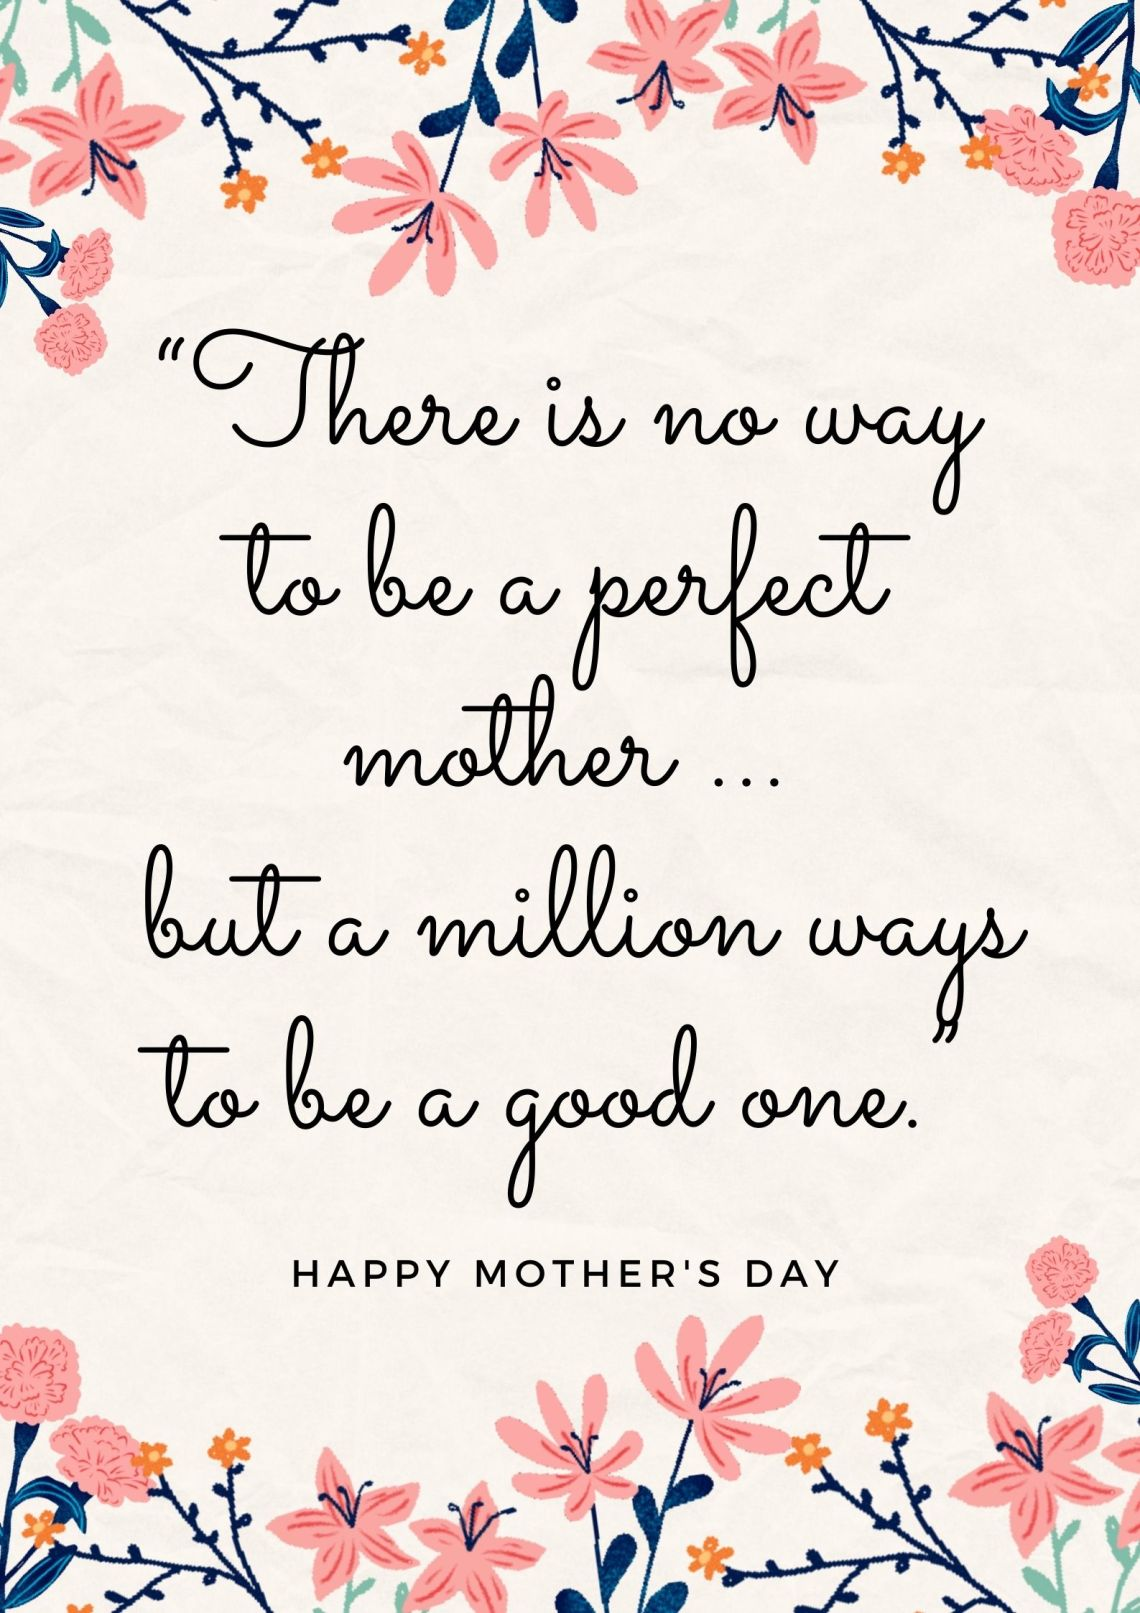 Mother's Day quotes for cards